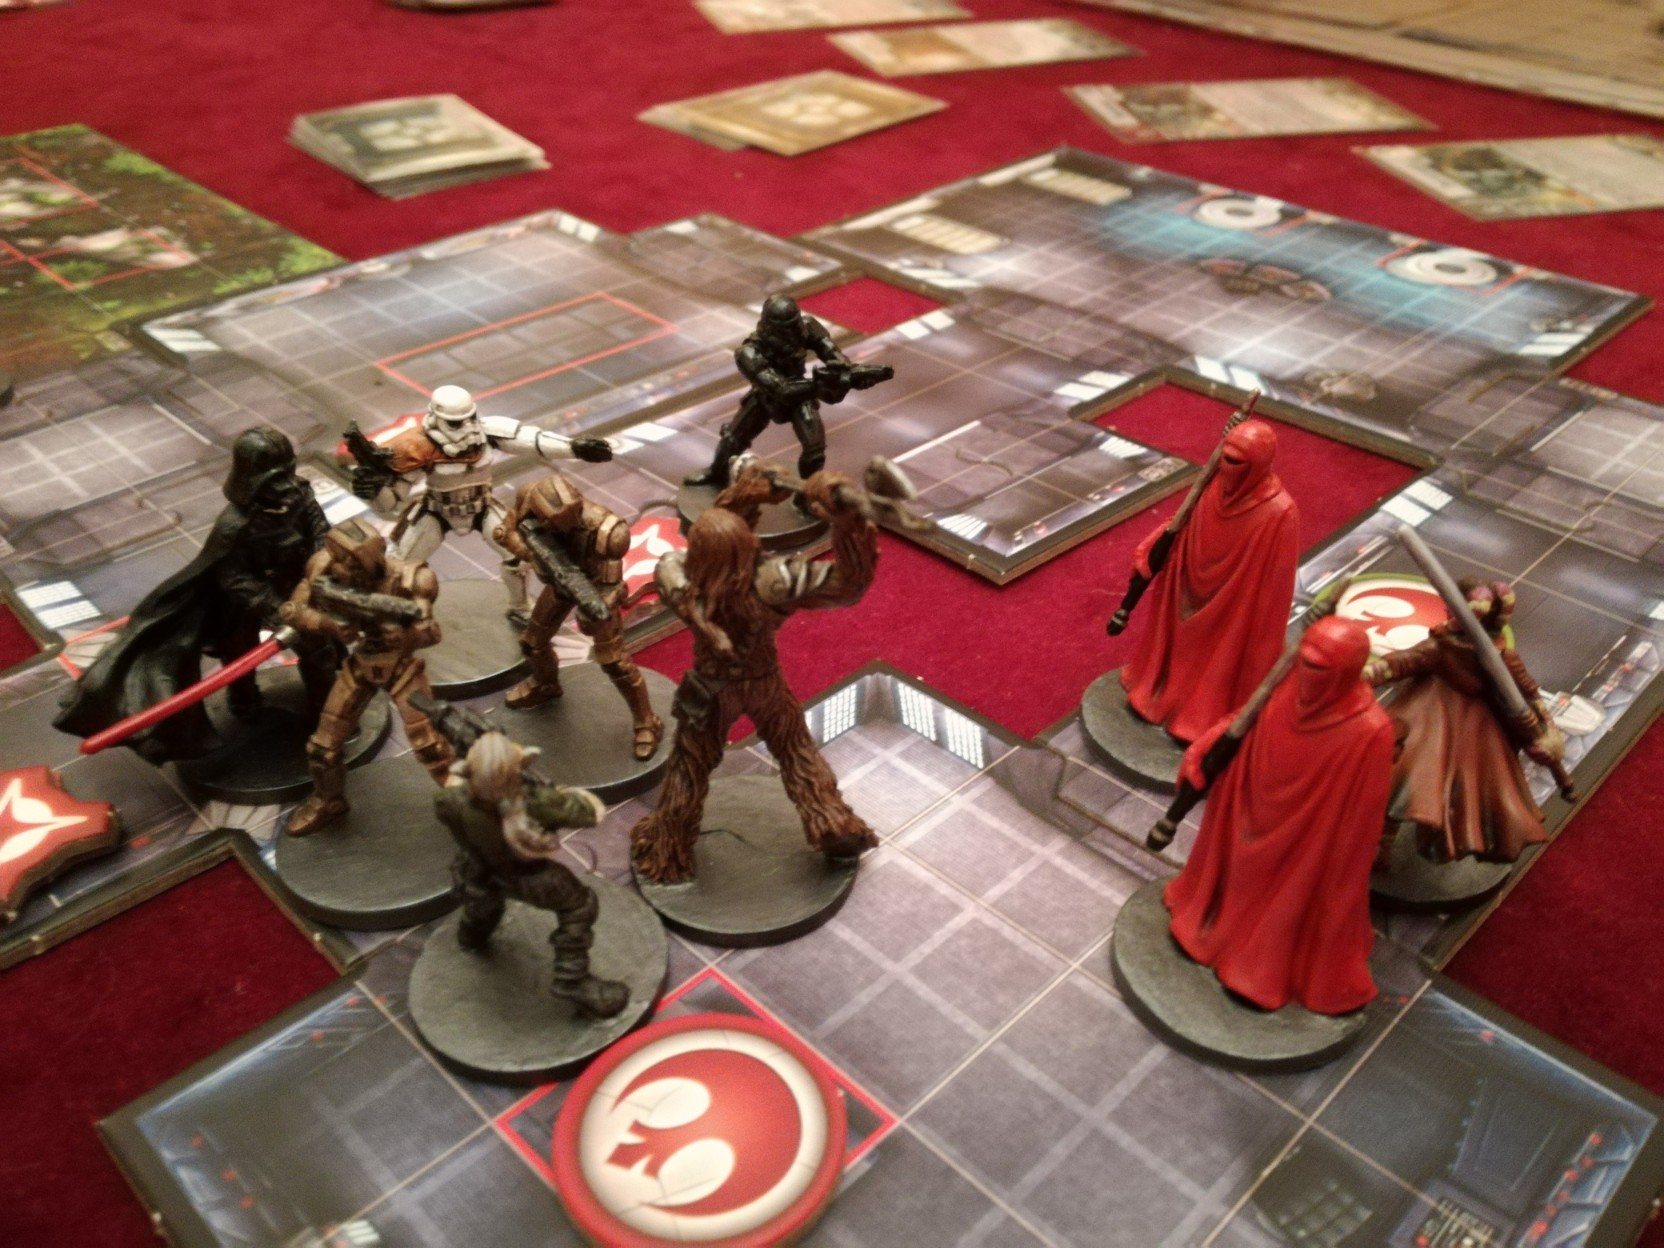 Games like Gloomhaven - Star Wars: Imperial Assault